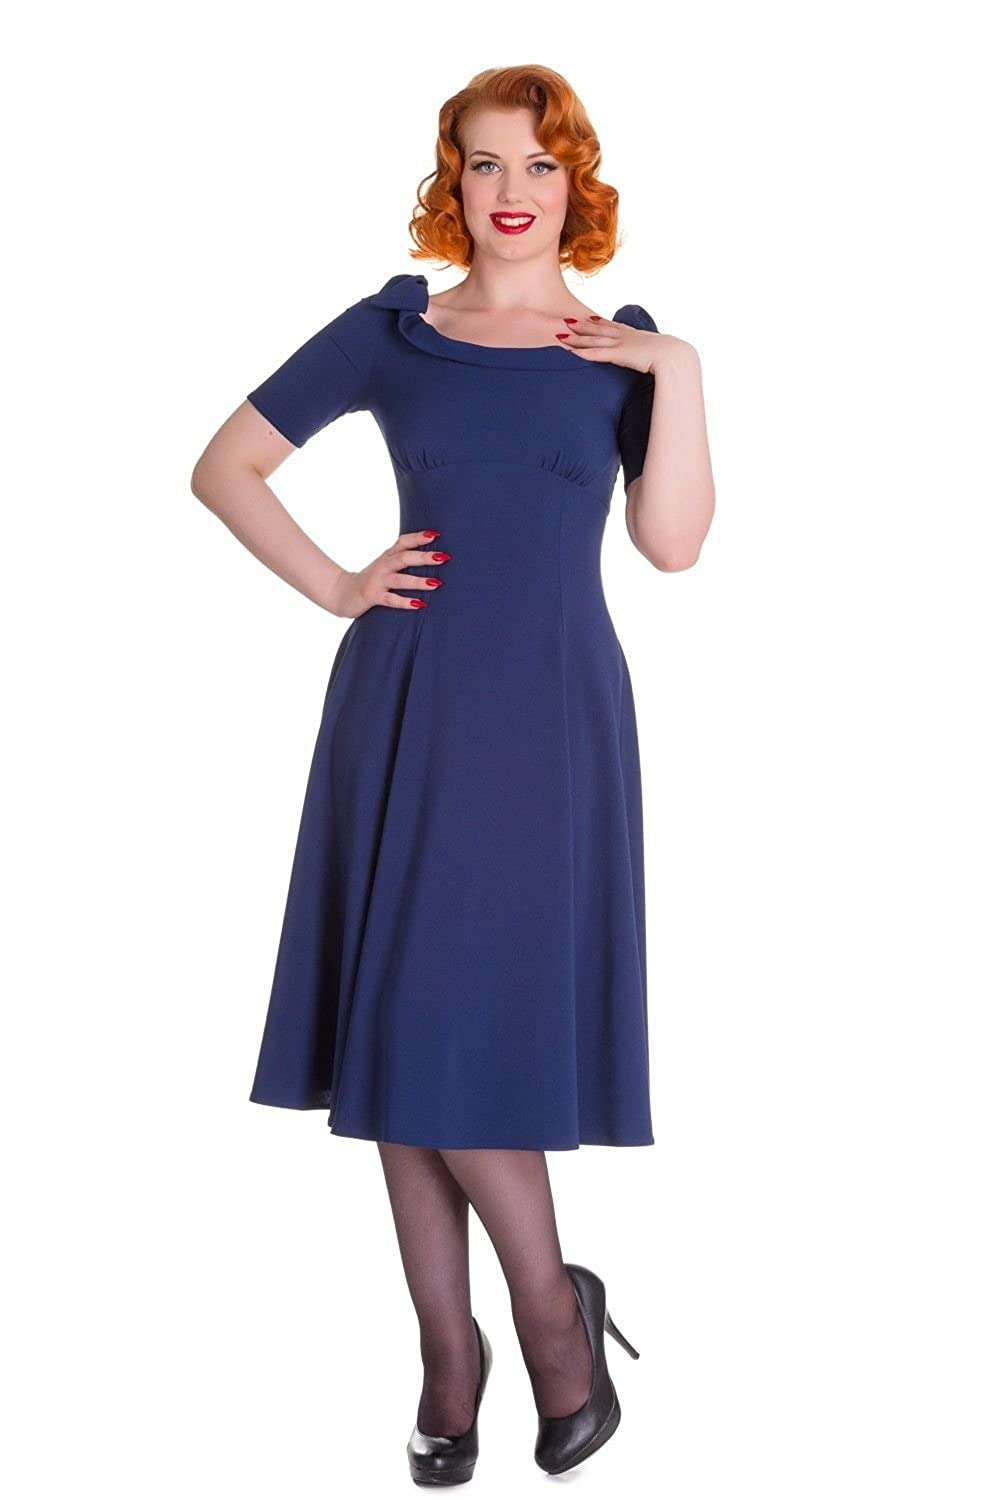 Plus Size Vintage Dresses, Plus Size Retro Dresses Hell Bunny Bianca Vintage Style 50s Dress $34.99 AT vintagedancer.com